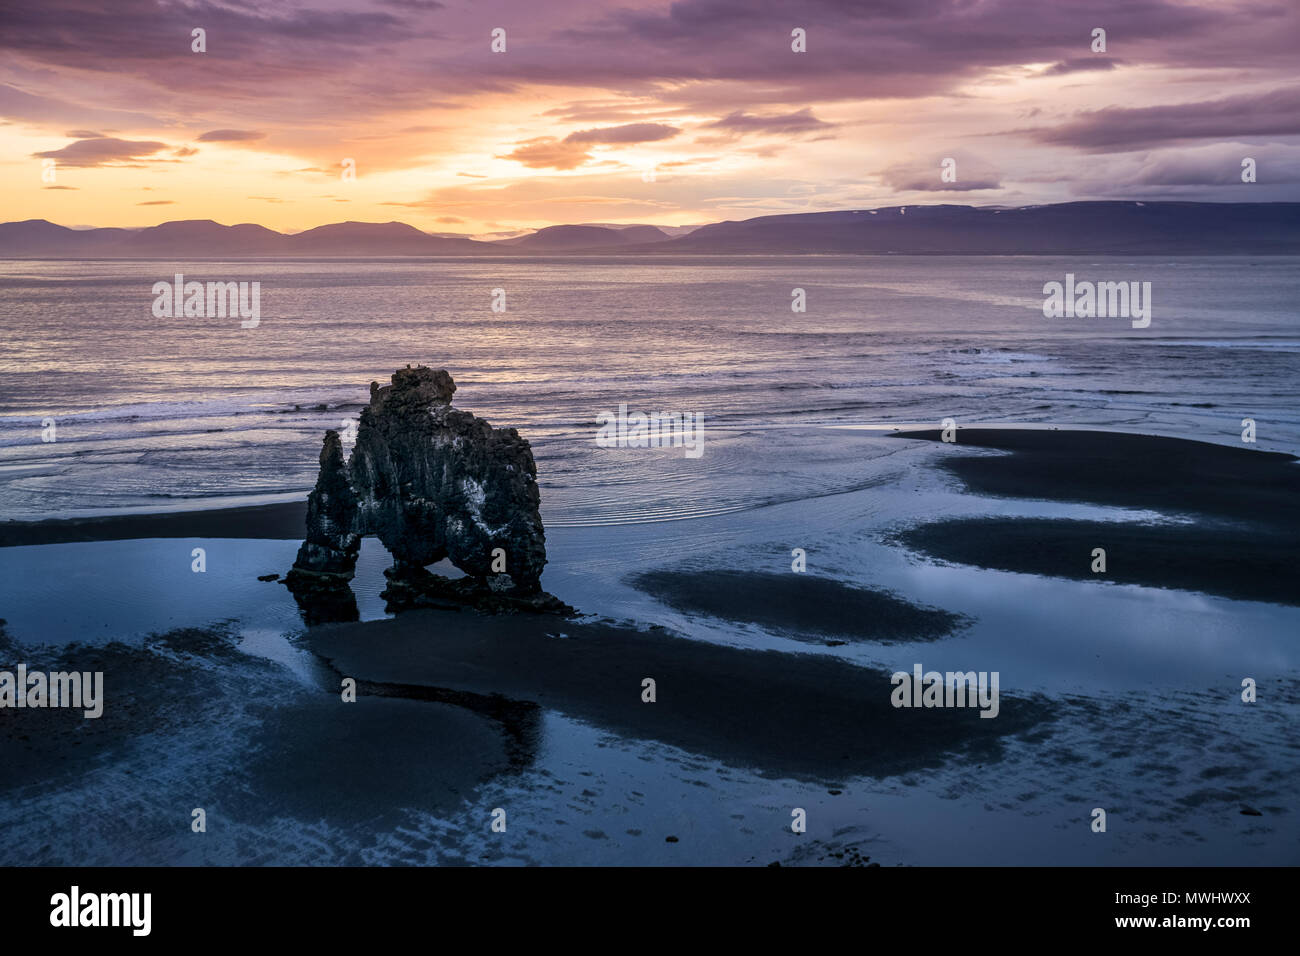 famous hvitserkur rock formation on the shore of north iceland - Stock Image